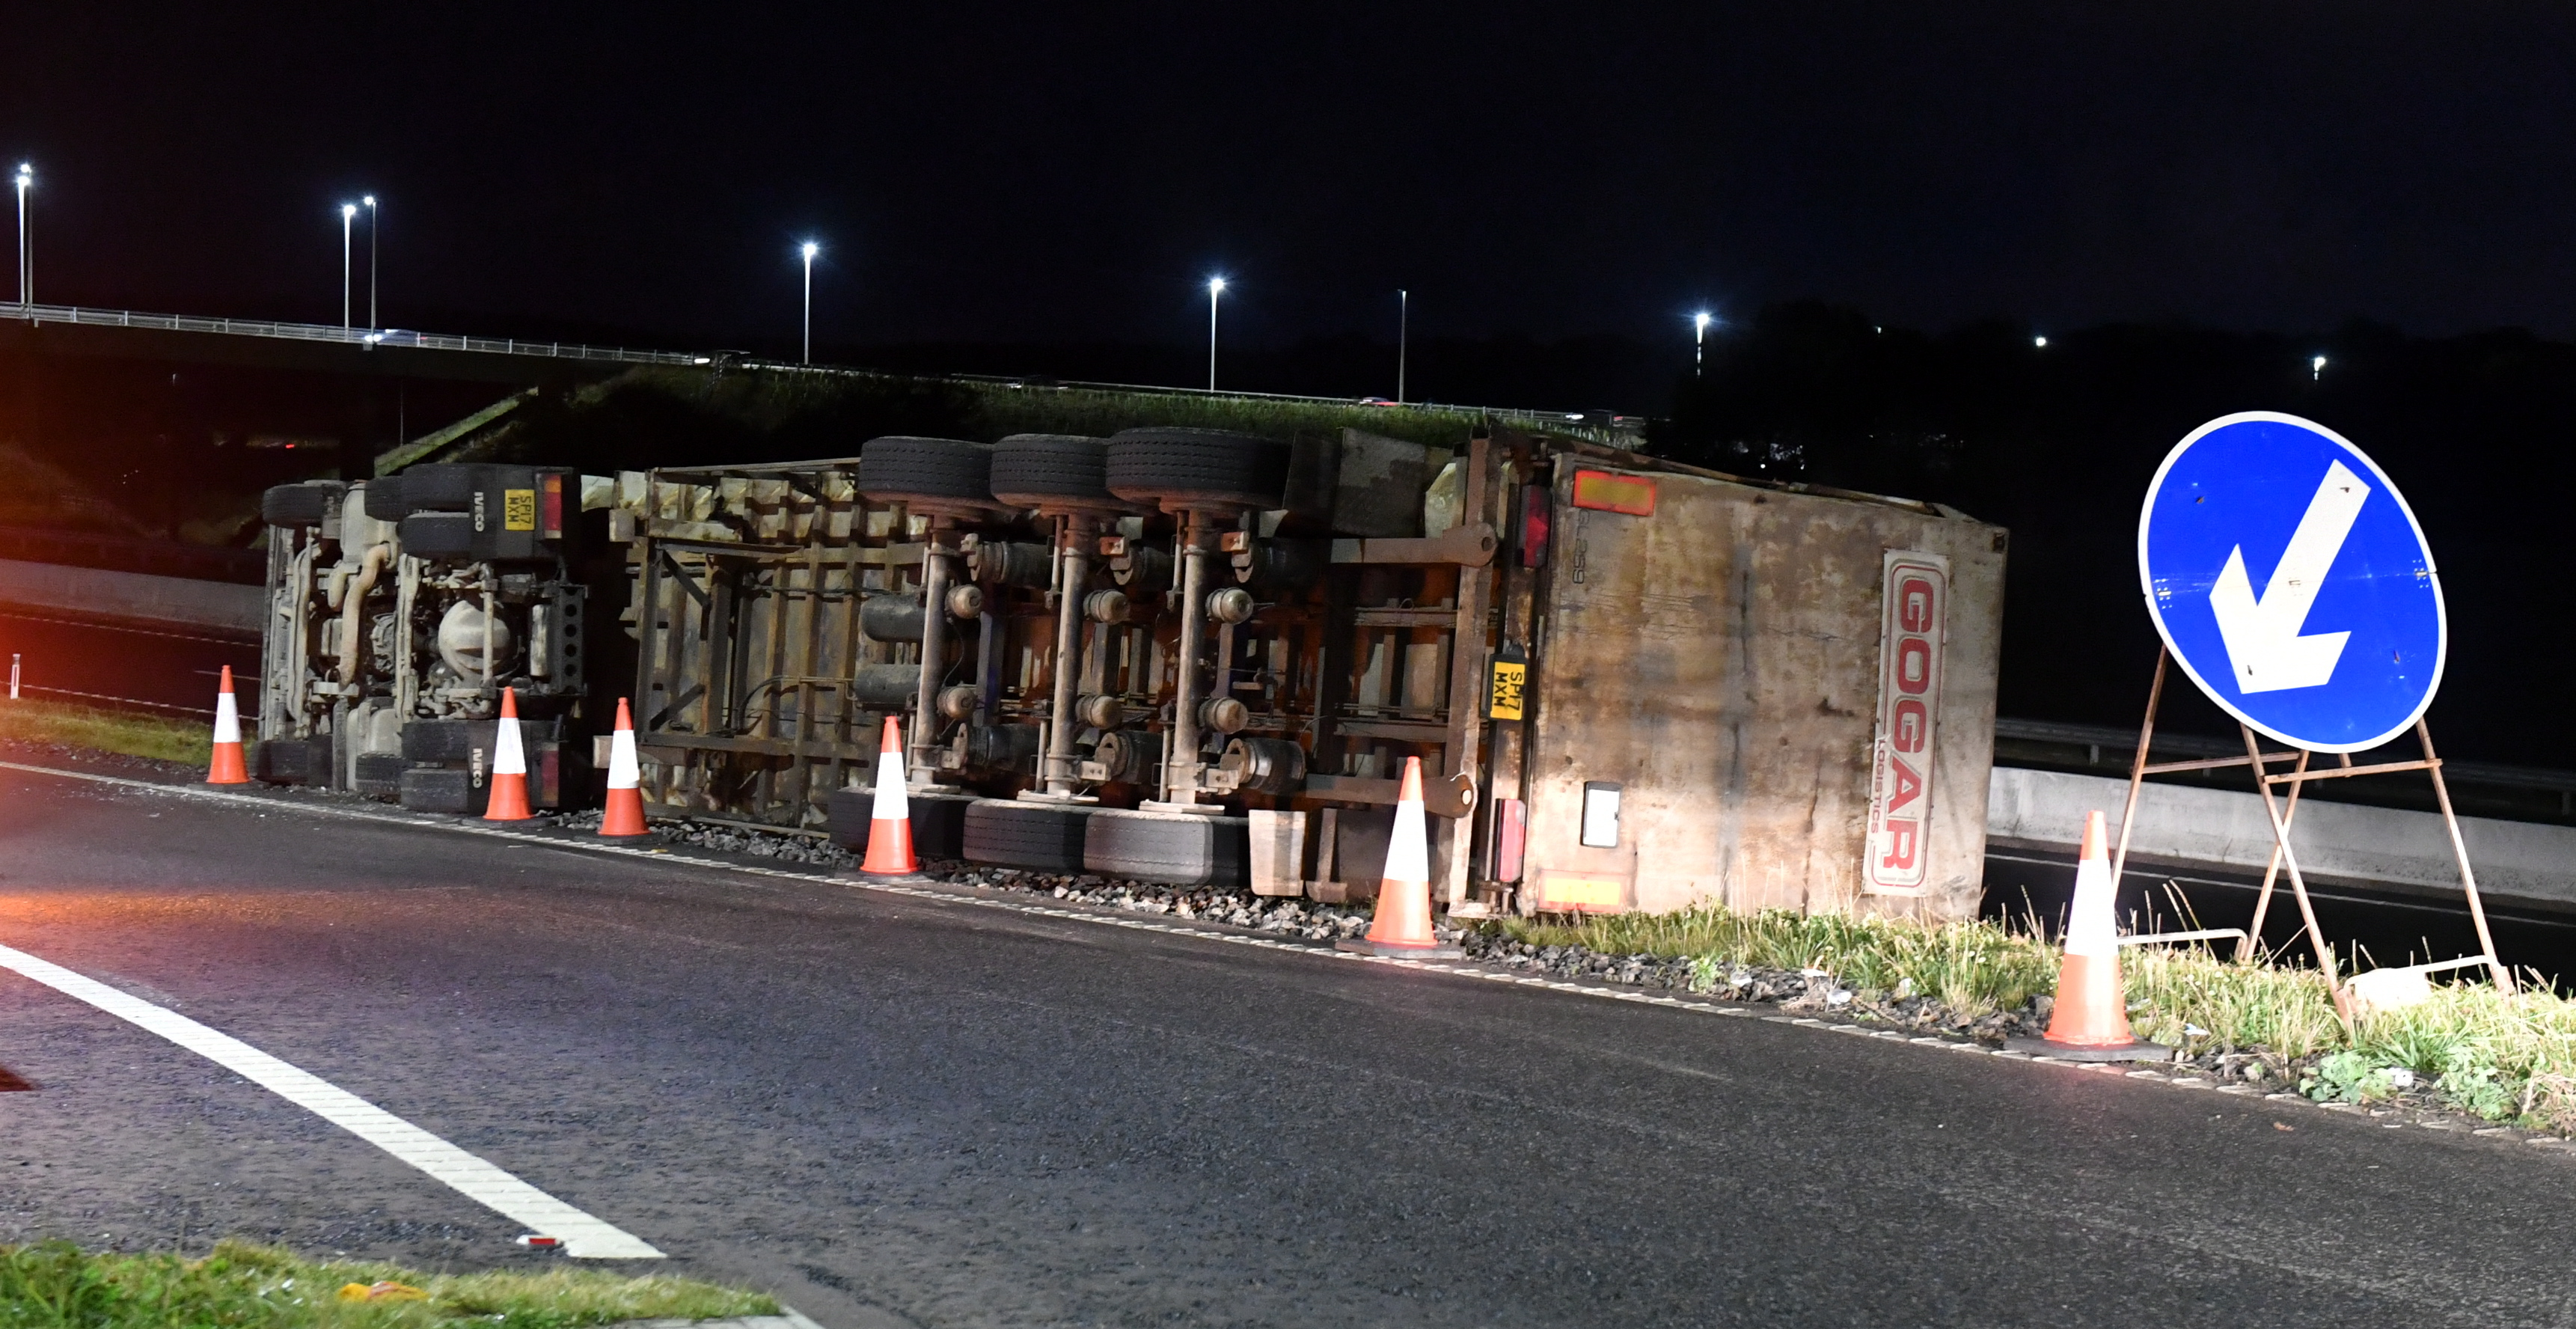 The overturned HGV. Picture by Chris Sumner